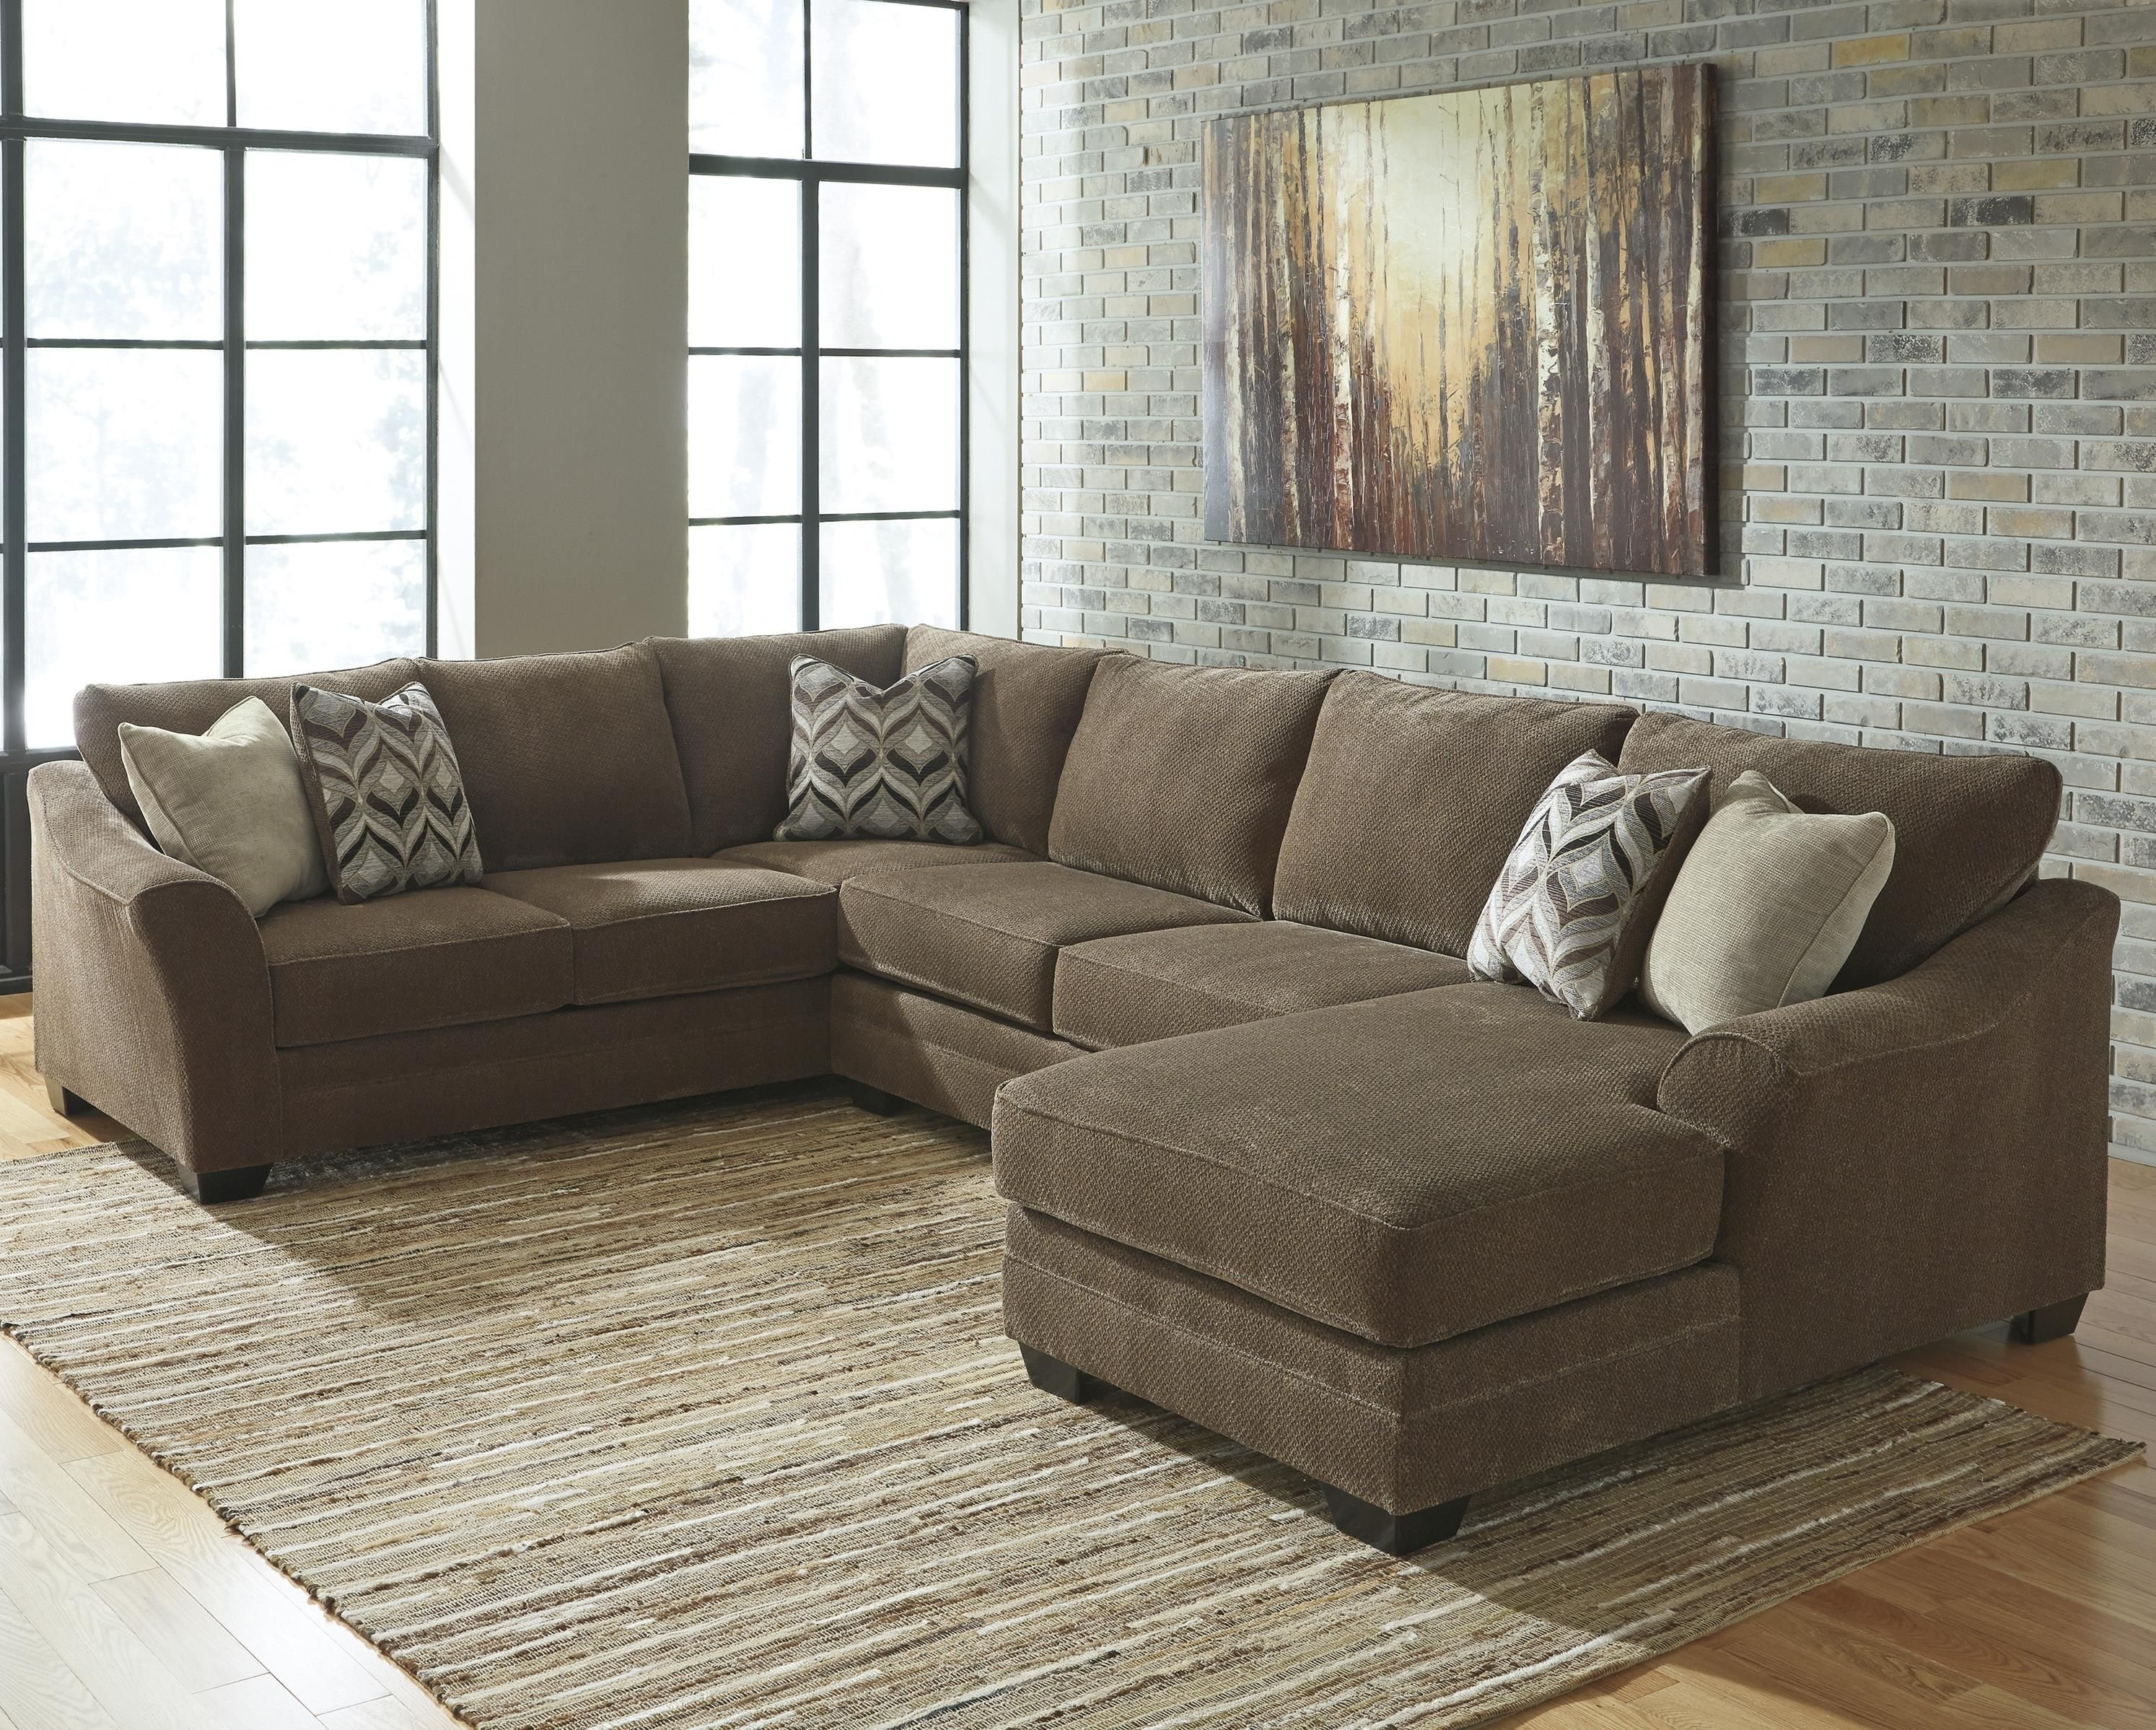 Justyna Contemporary 3-Piece Sectional With Right Chaise for Royal Furniture Sectional Sofas (Image 8 of 10)